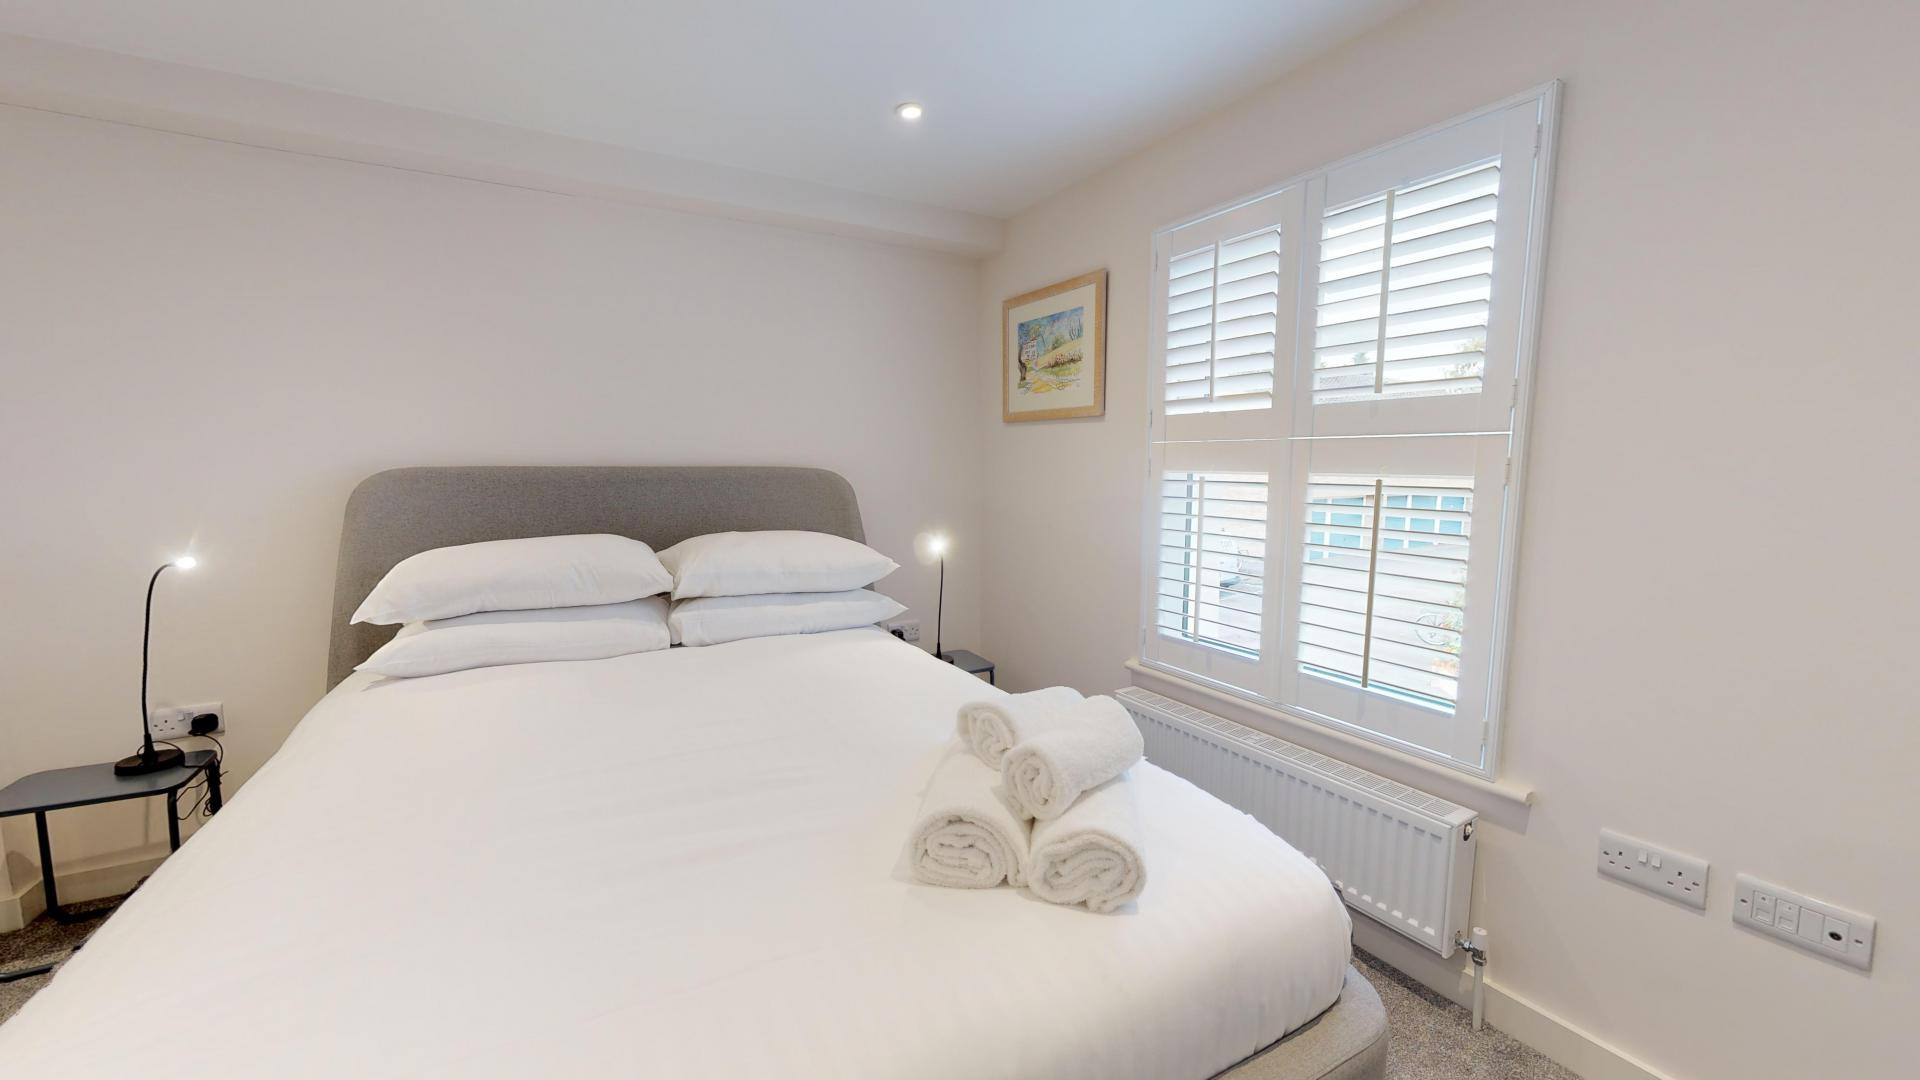 Bed at Rogers Street House, Summertown, Oxford - Citybase Apartments